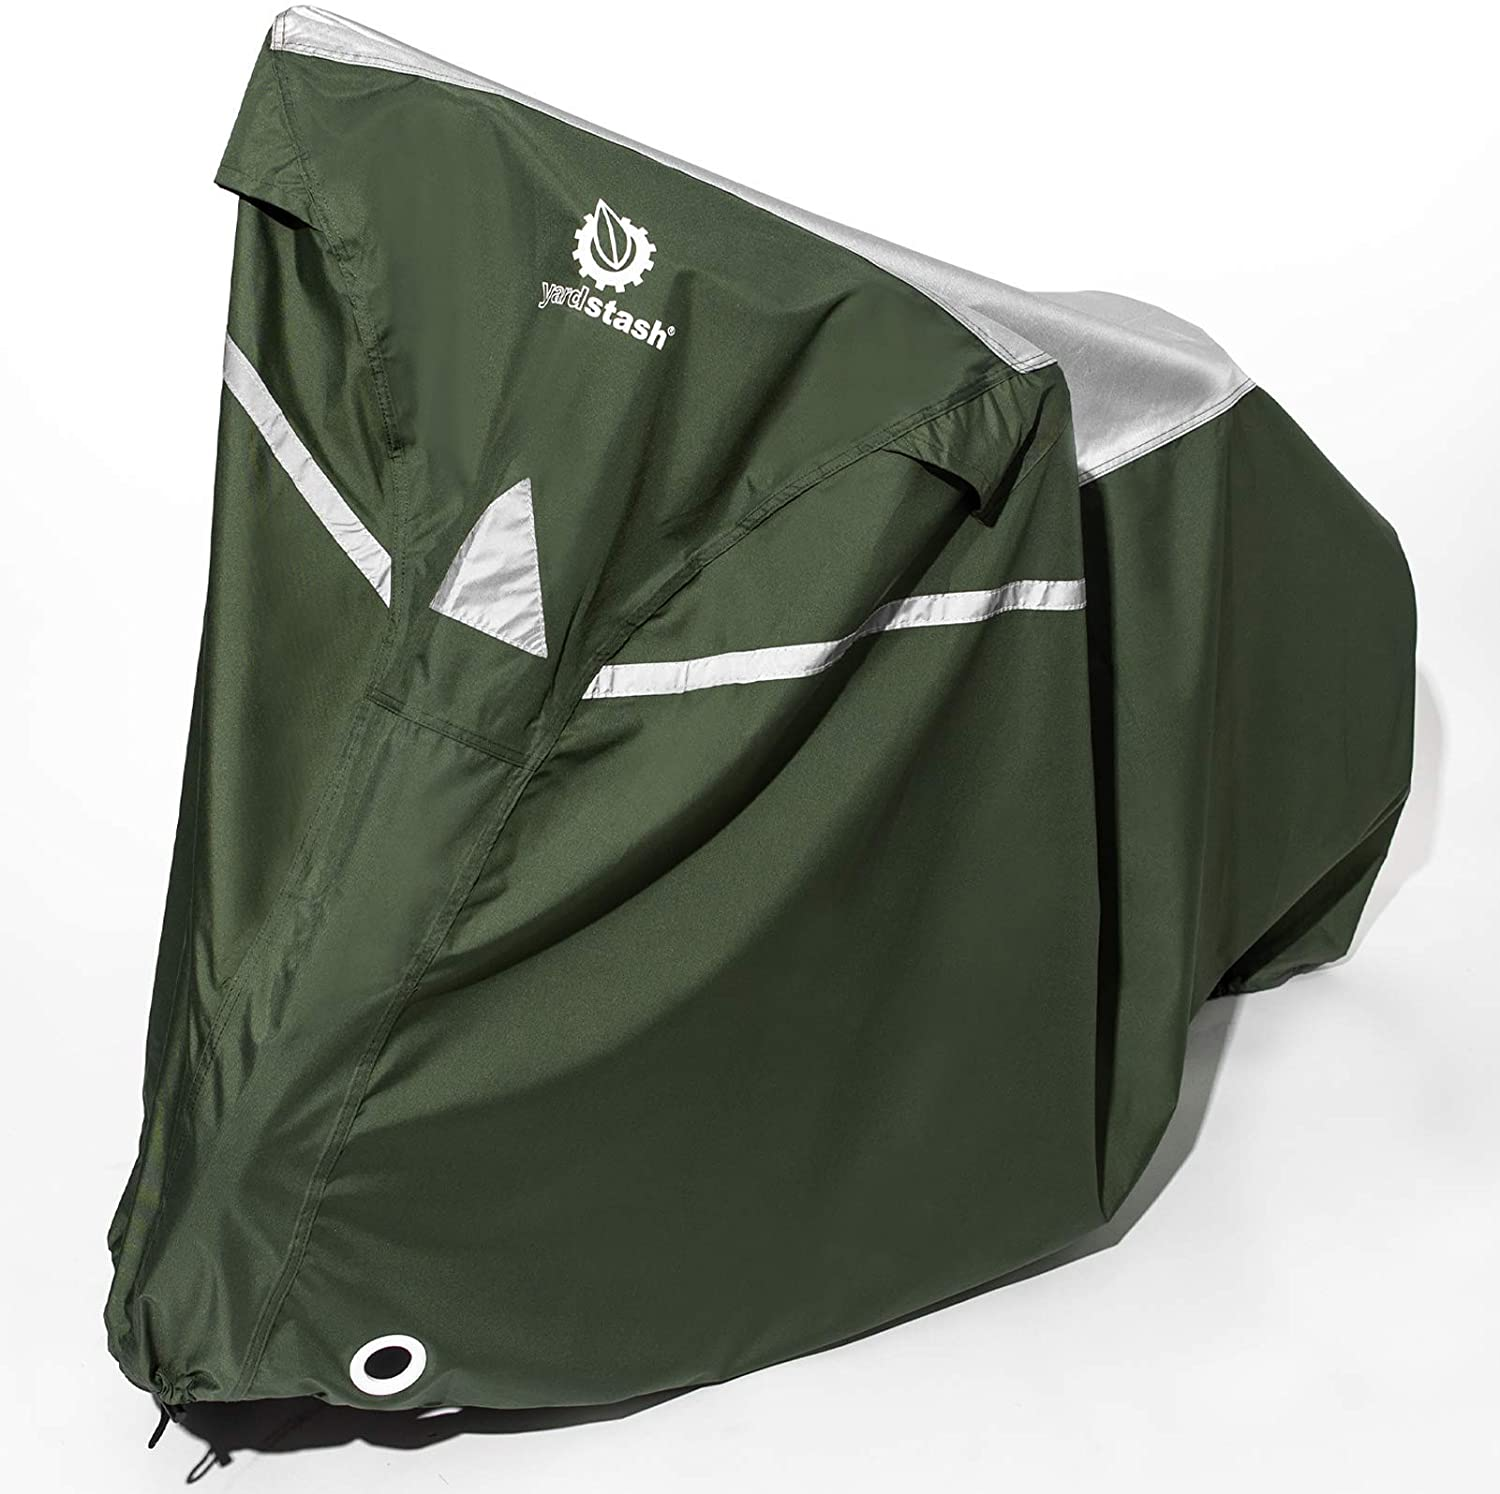 yardstash bike covers green color